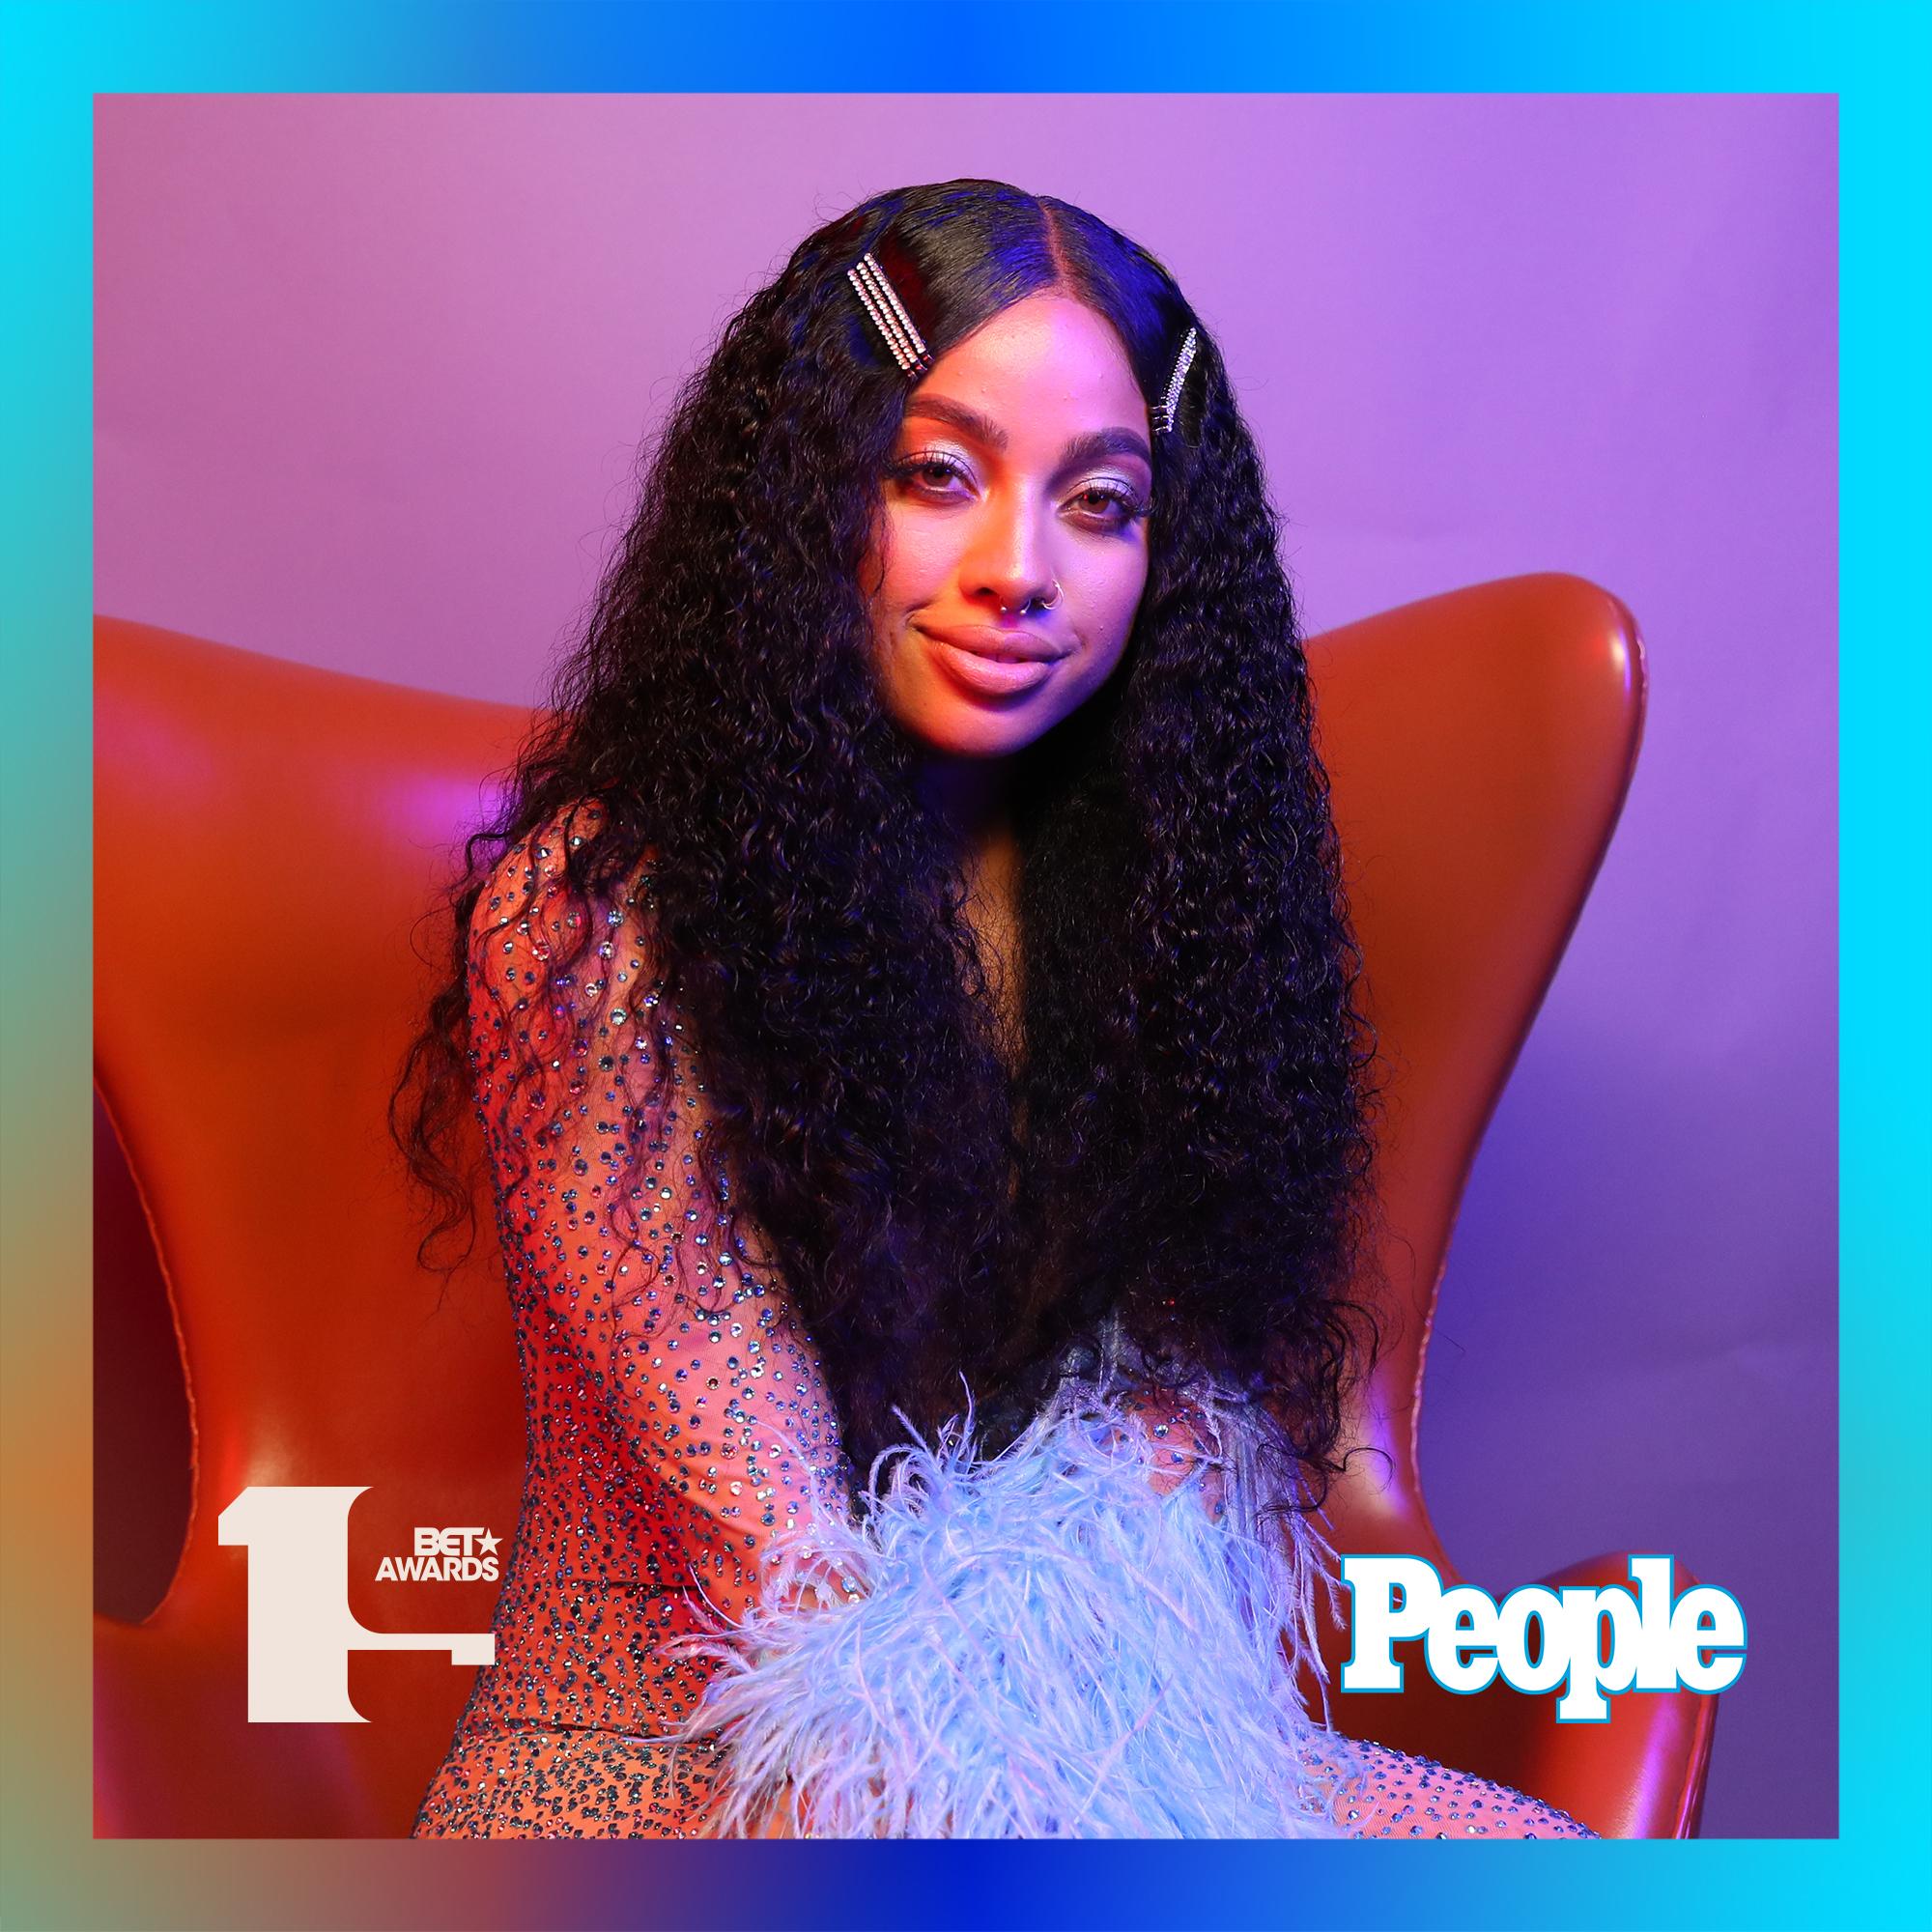 Kiana Lede photographed at the 2019 BET Awards by Bennett Raglin exclusively for PEOPLE Credit: Bennett Raglin